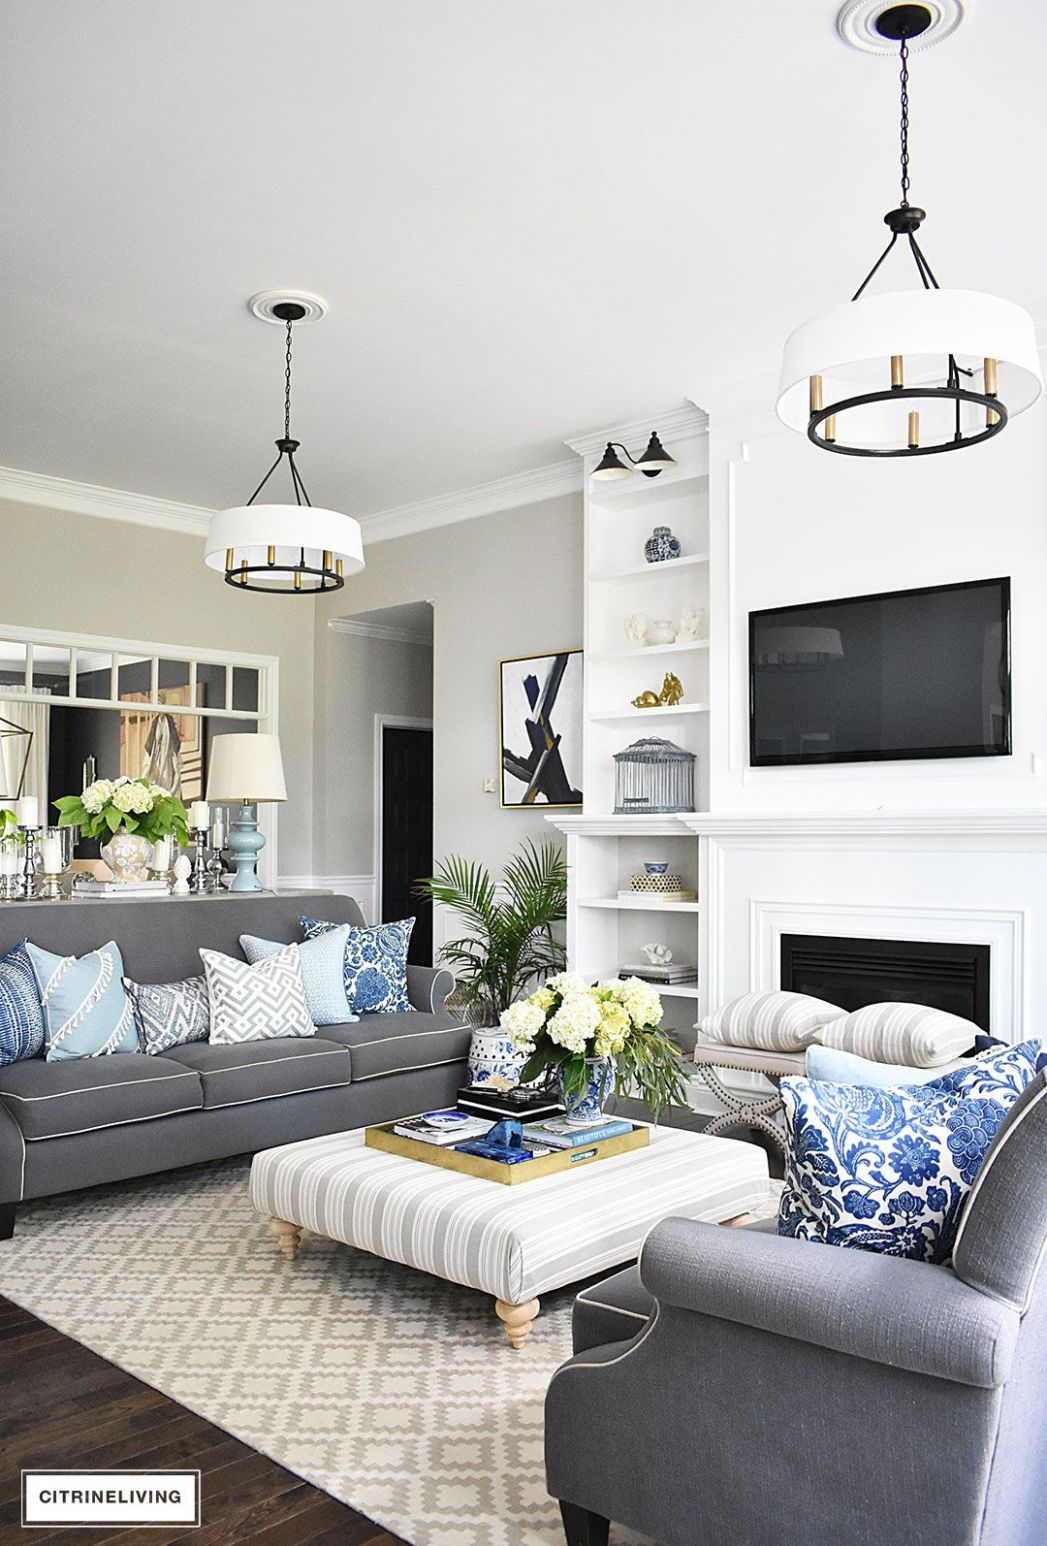 12+ Fresh Ideas for Decorating with Blue and White | Open concept ..